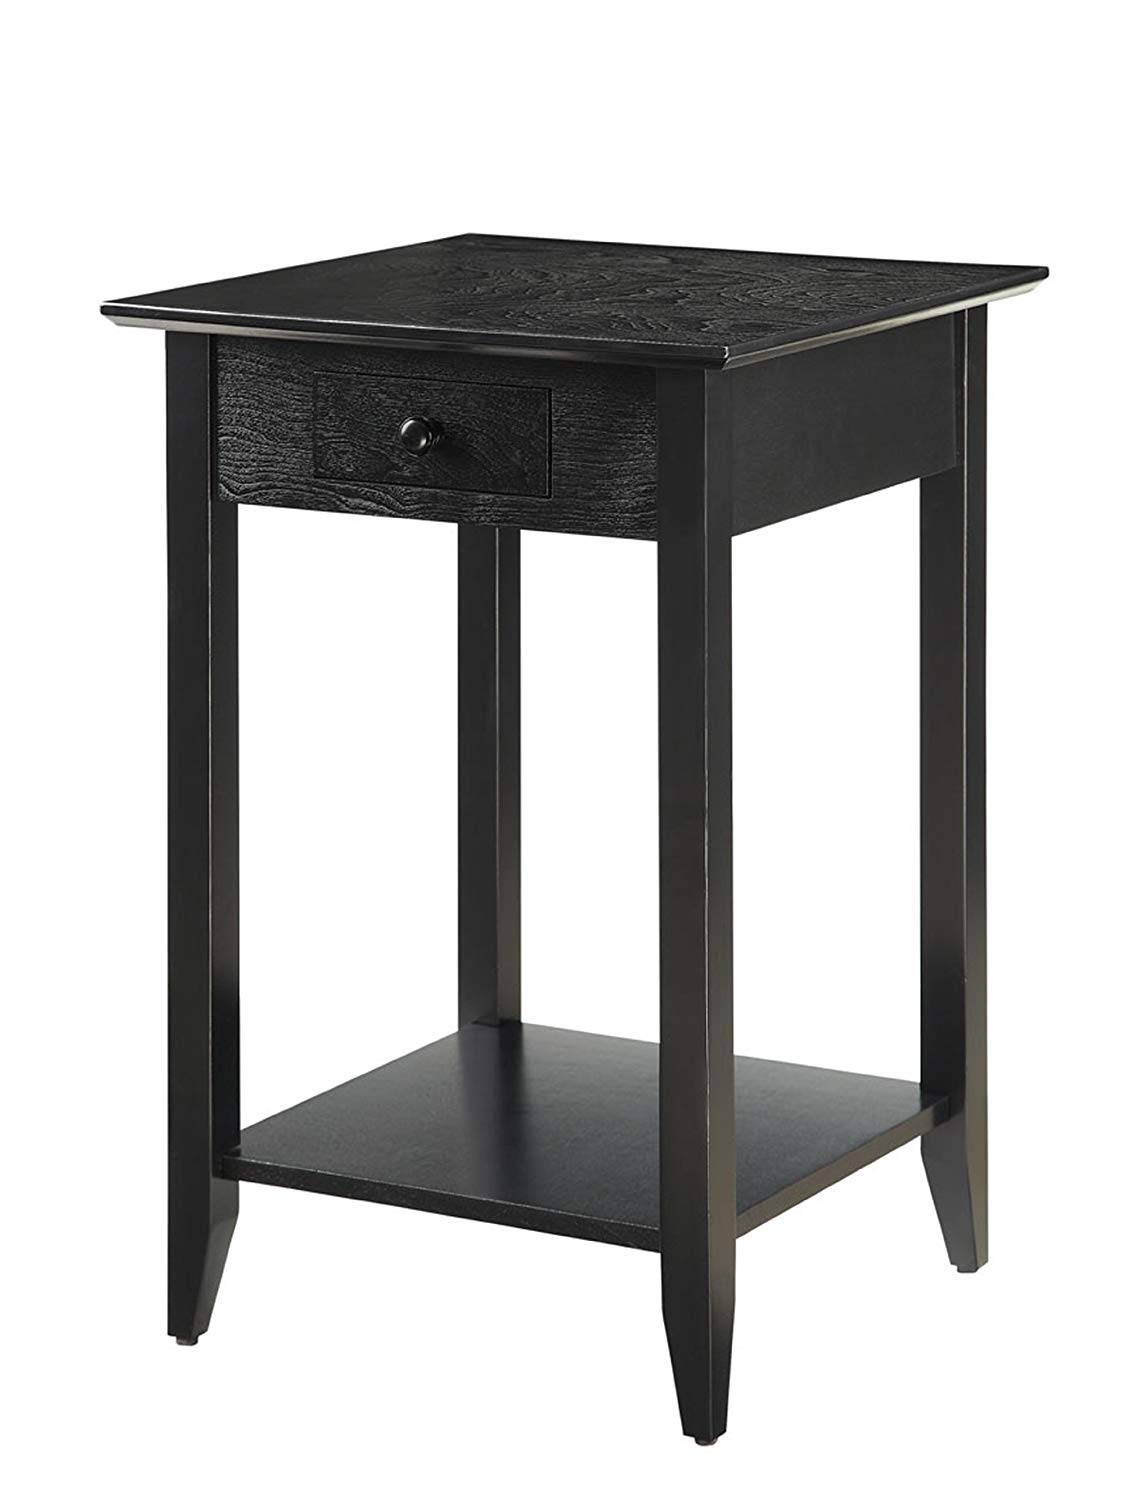 convenience concepts american heritage end table with black basket shelf and drawer kitchen dining boardroom broyhill sofa rattan furniture coffee dark cherry magnolia farms waco